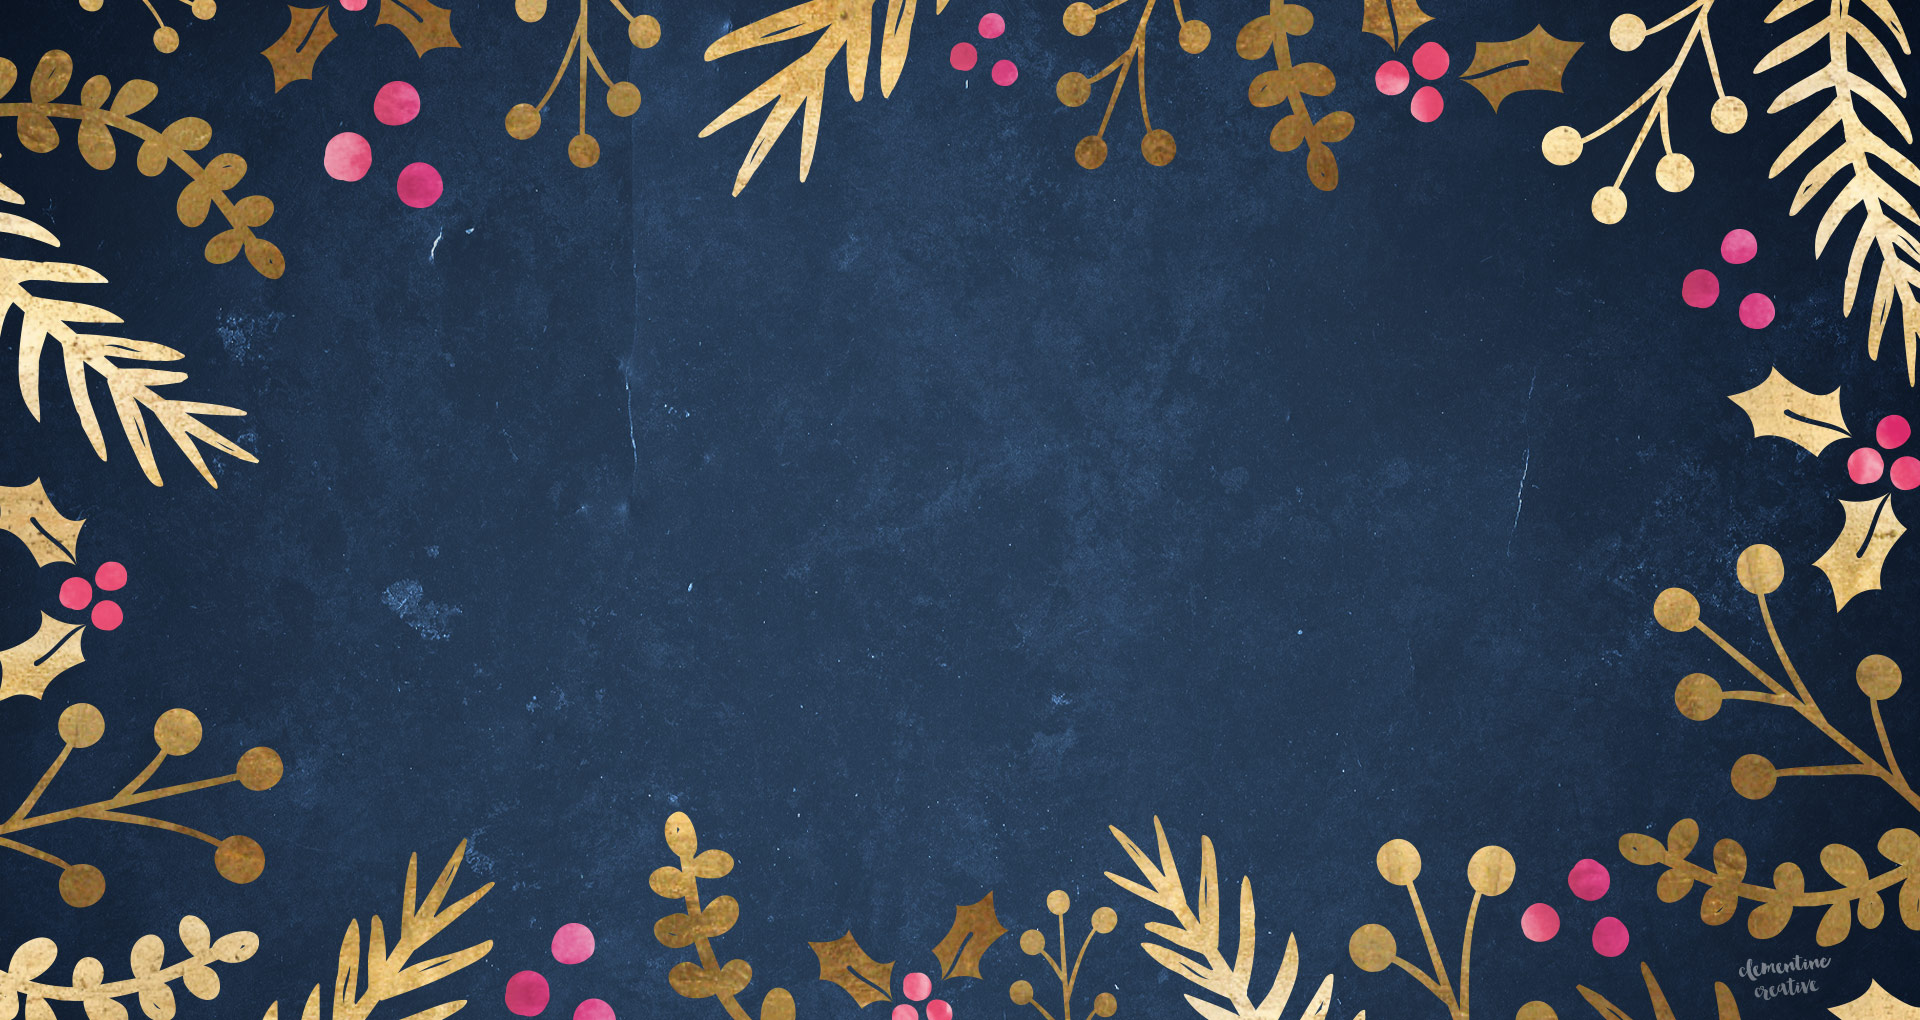 free festive wallpaper foil foliage